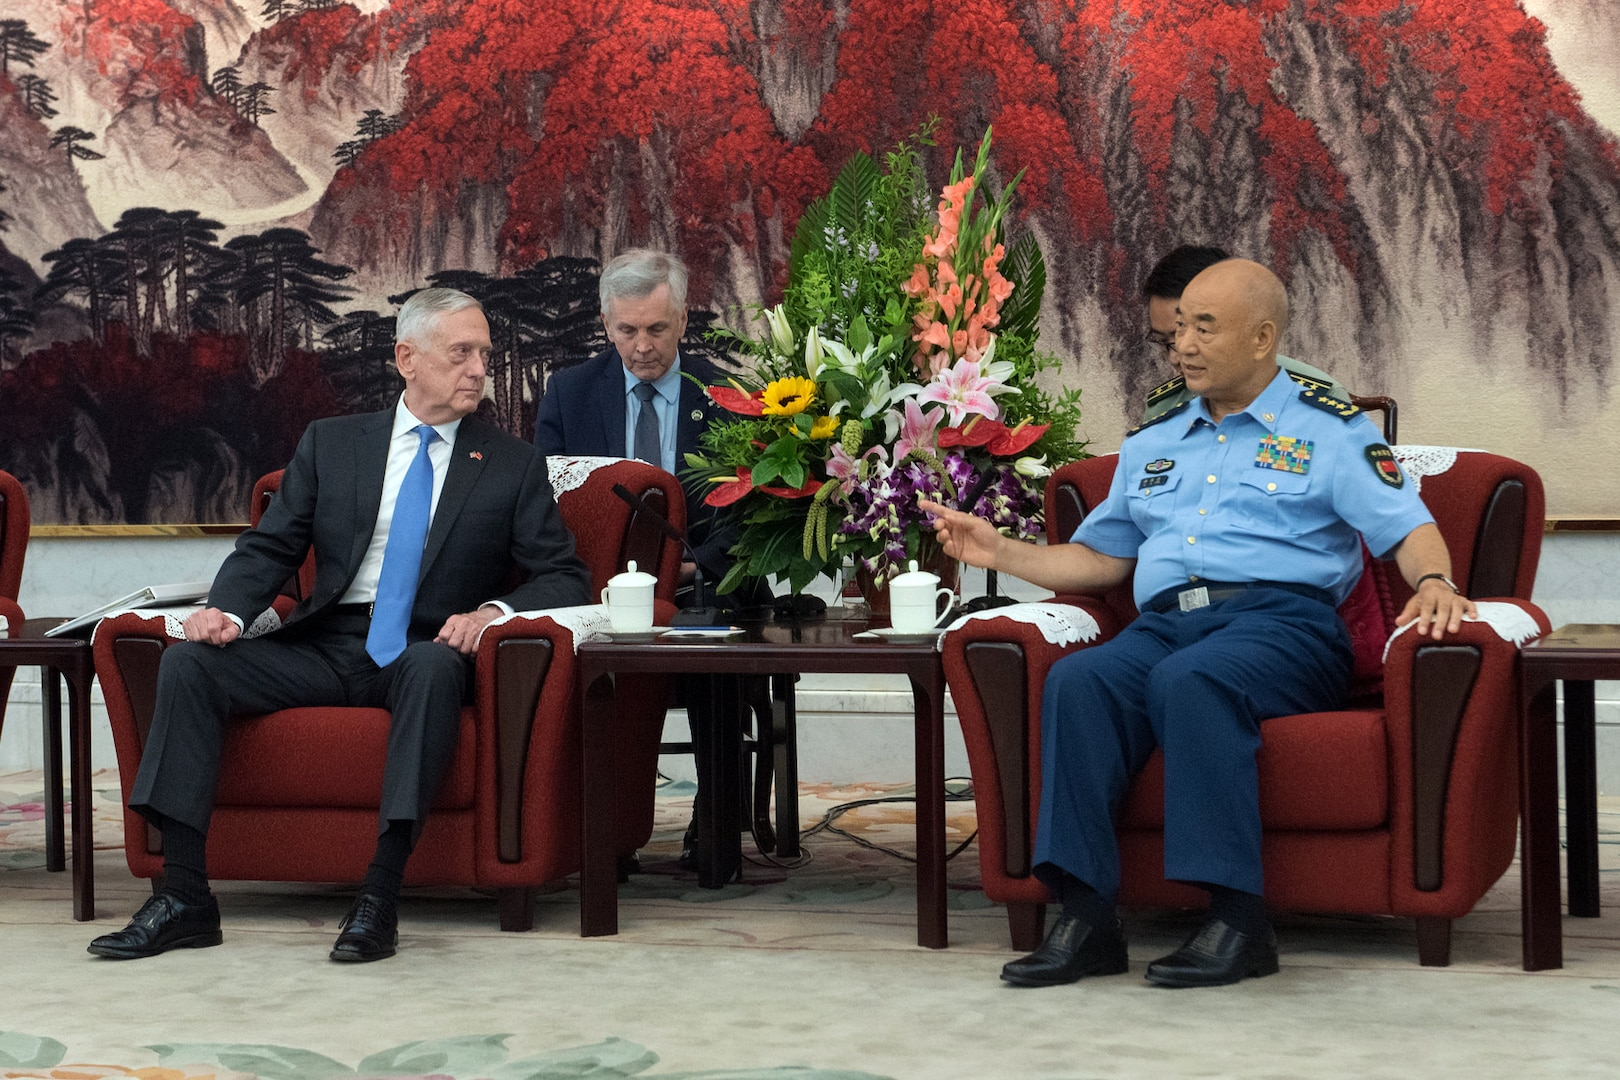 Defense Secretary James N. Mattis and a Chinese military officer sit in chairs and talk.